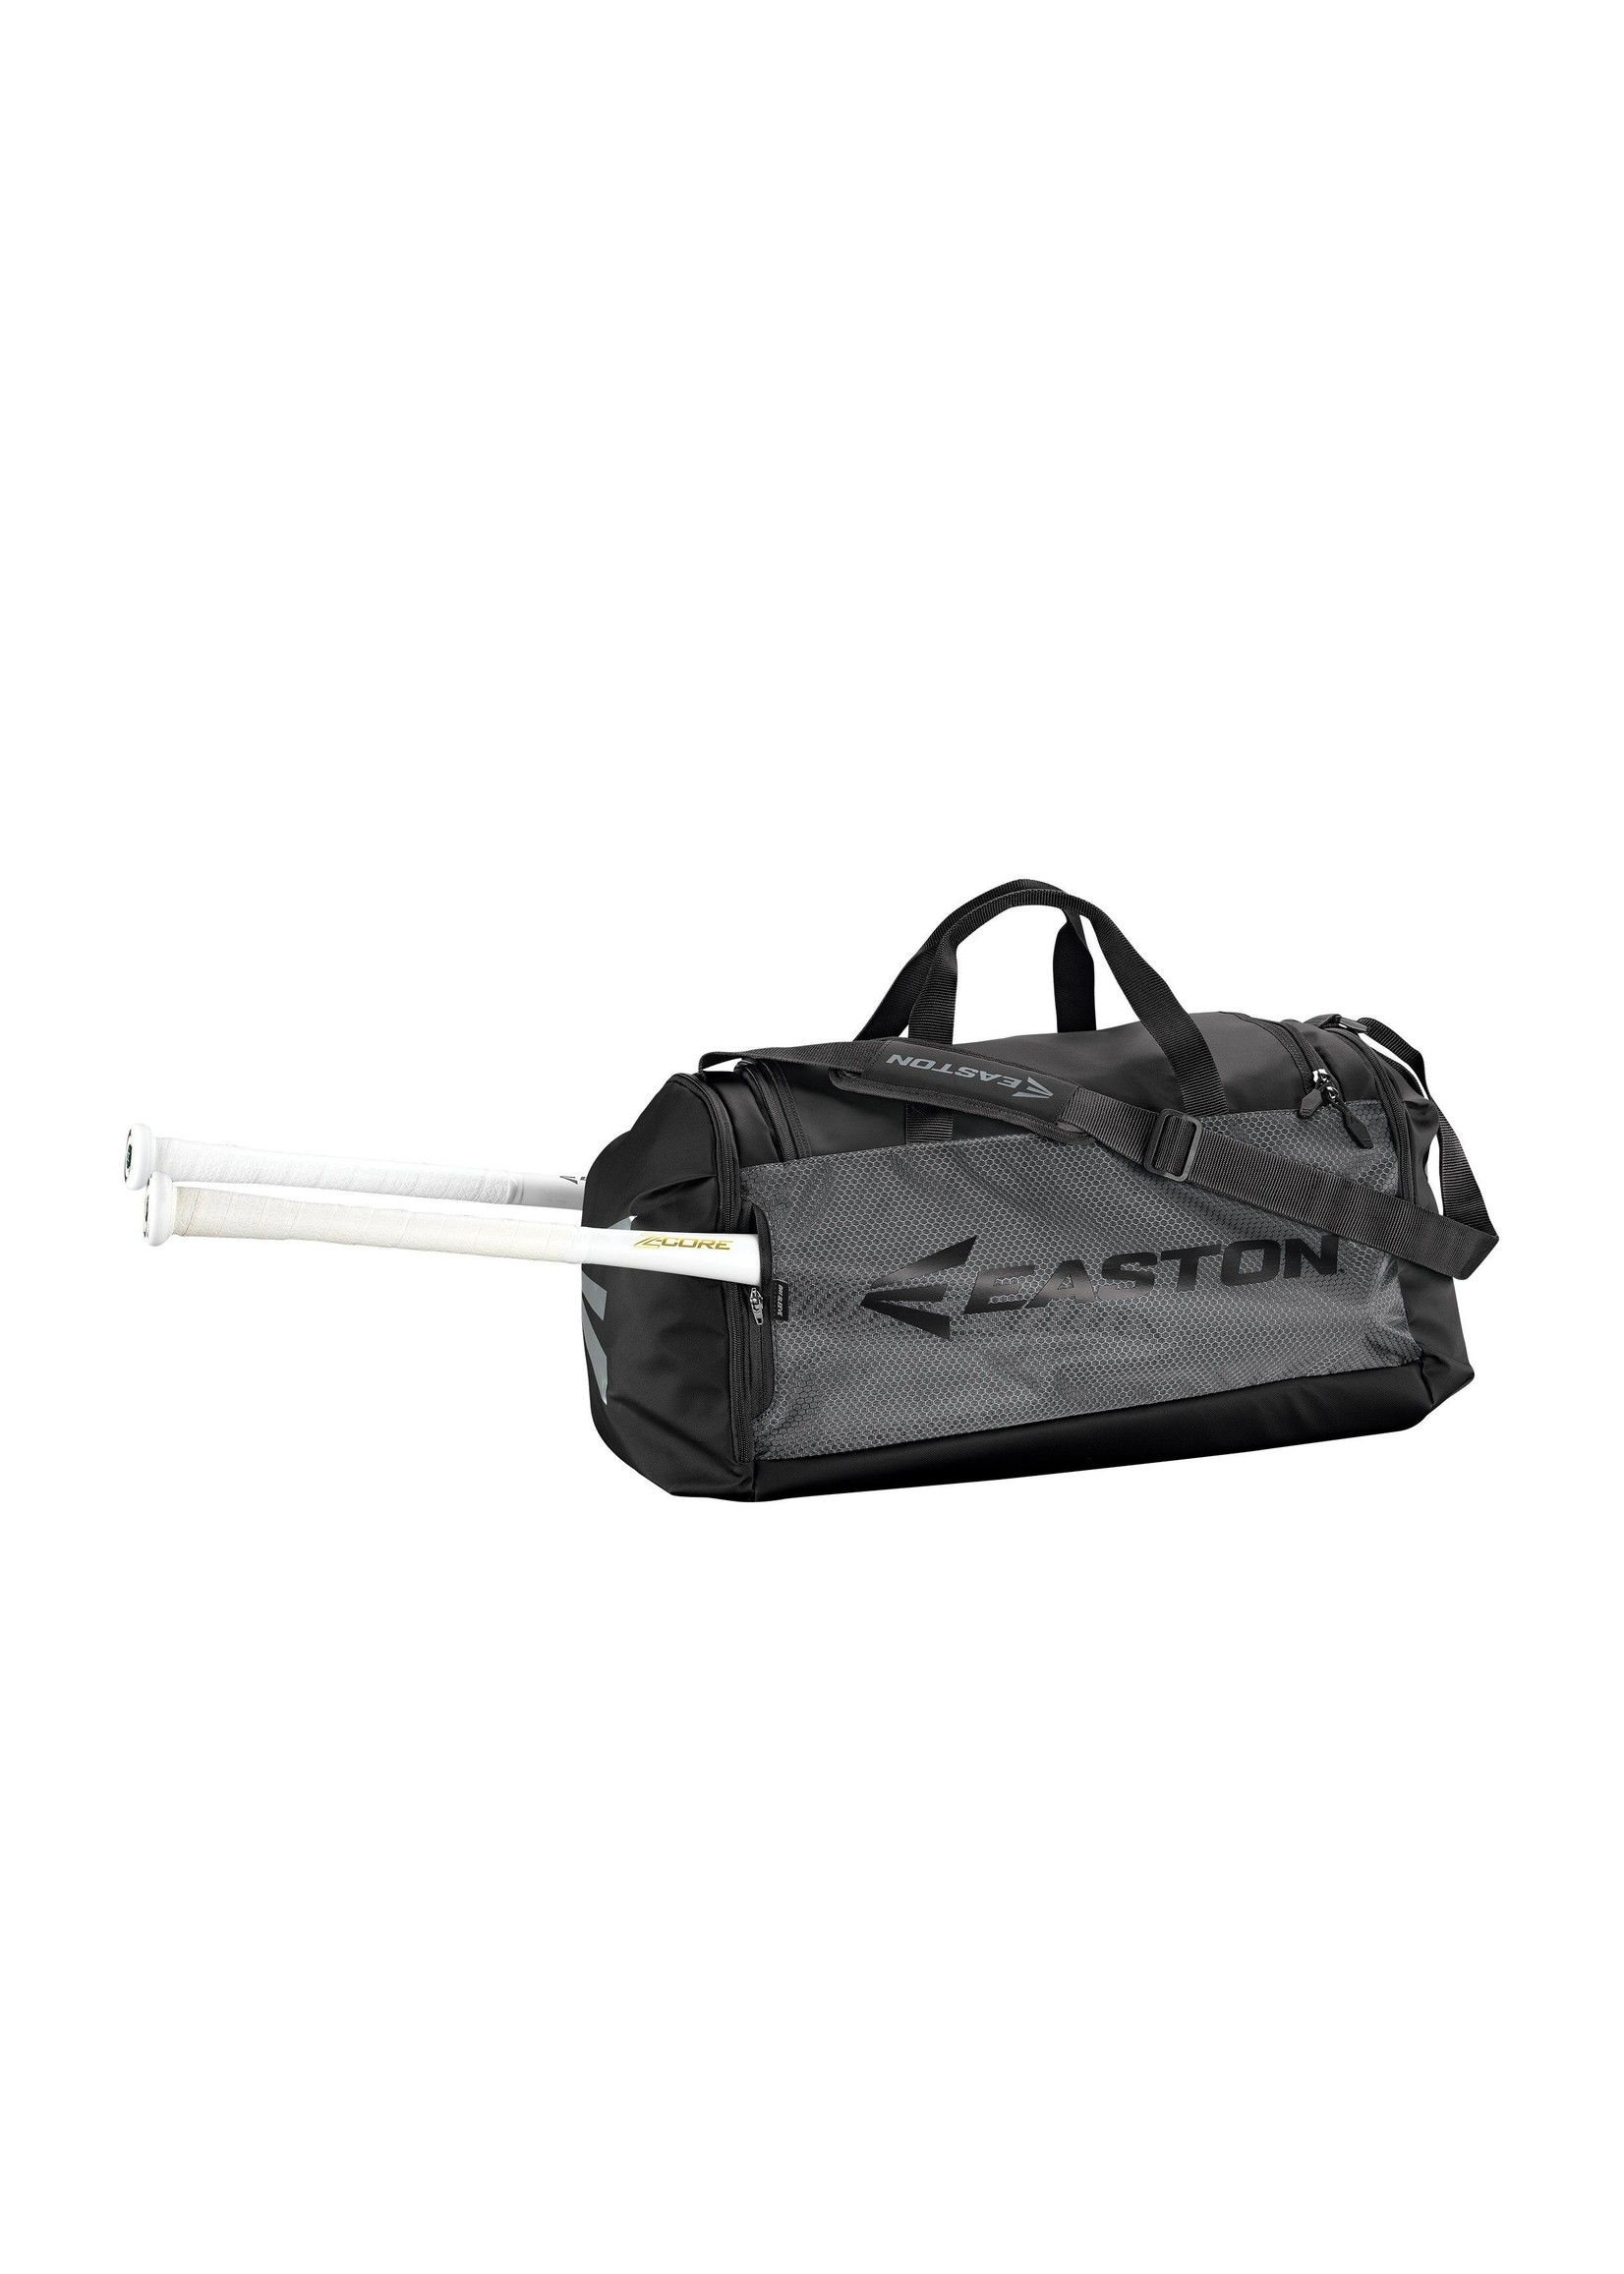 Easton Baseball (Canada) EASTON E310D PLAYER DUFFLE BAG